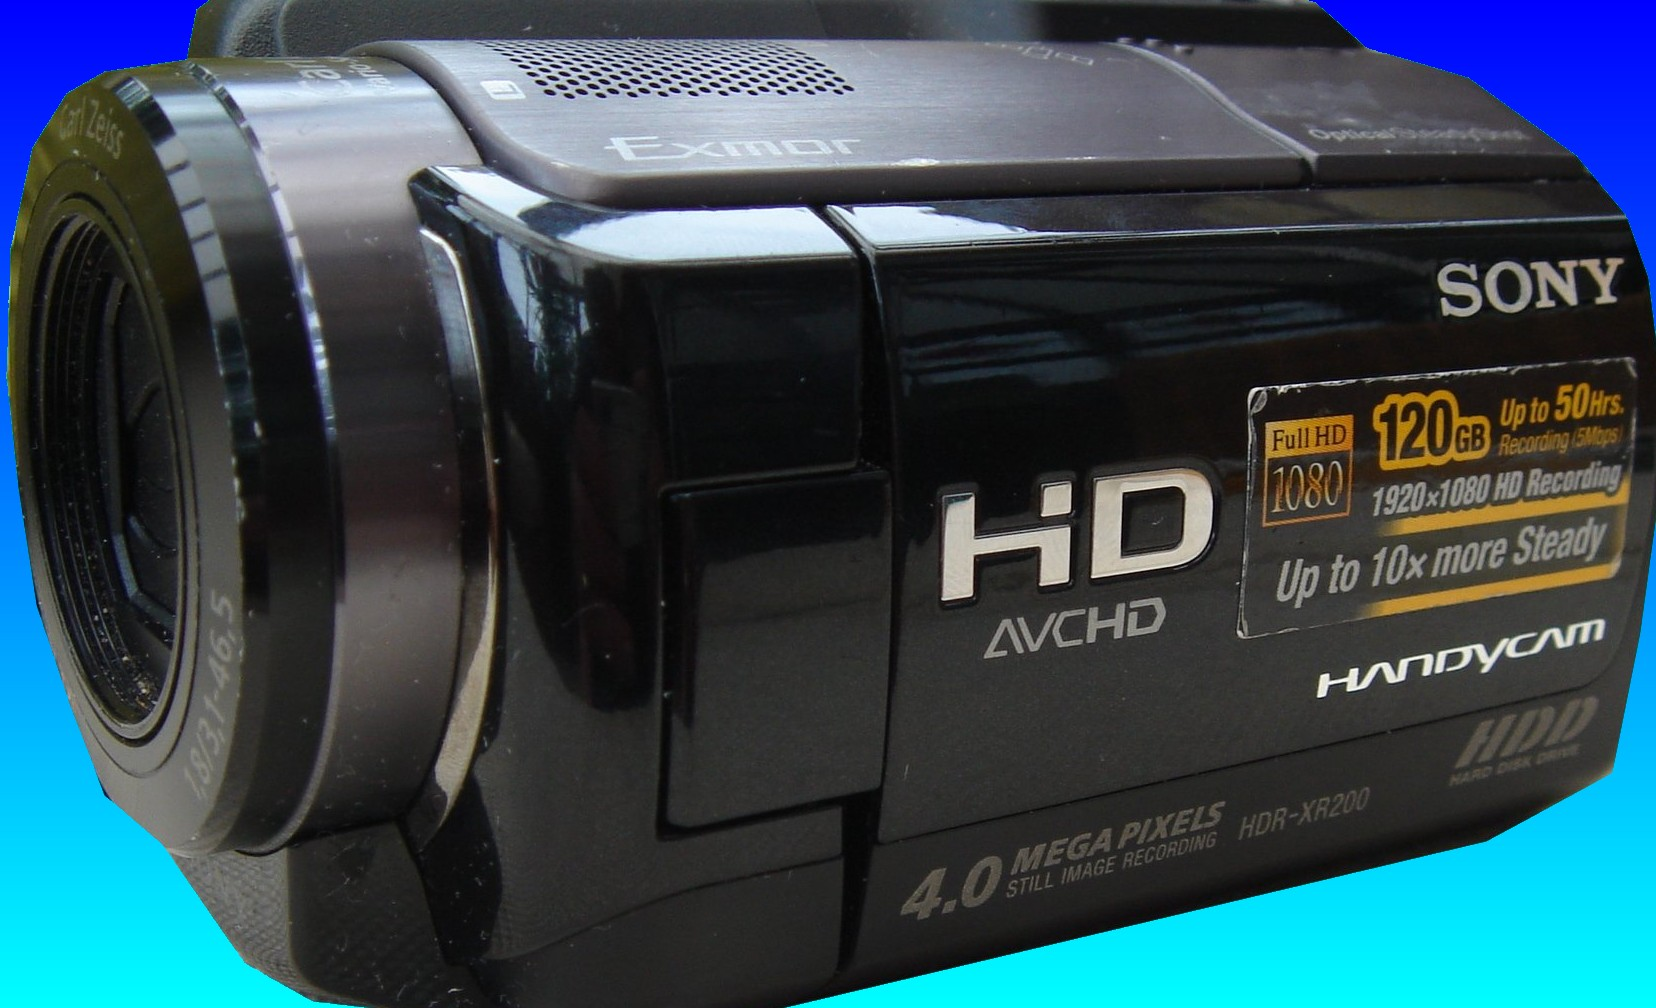 A Sony AVCHD HD High Definition video camera which records clips to the hard drive. We have recovered video from this drive and re-joined the video clips into their original order. The owner had re-formatted the drive and deleted the videos, and over the years the video had been fragmented and spilit into many smaller clips saved in different parts of the hdd.